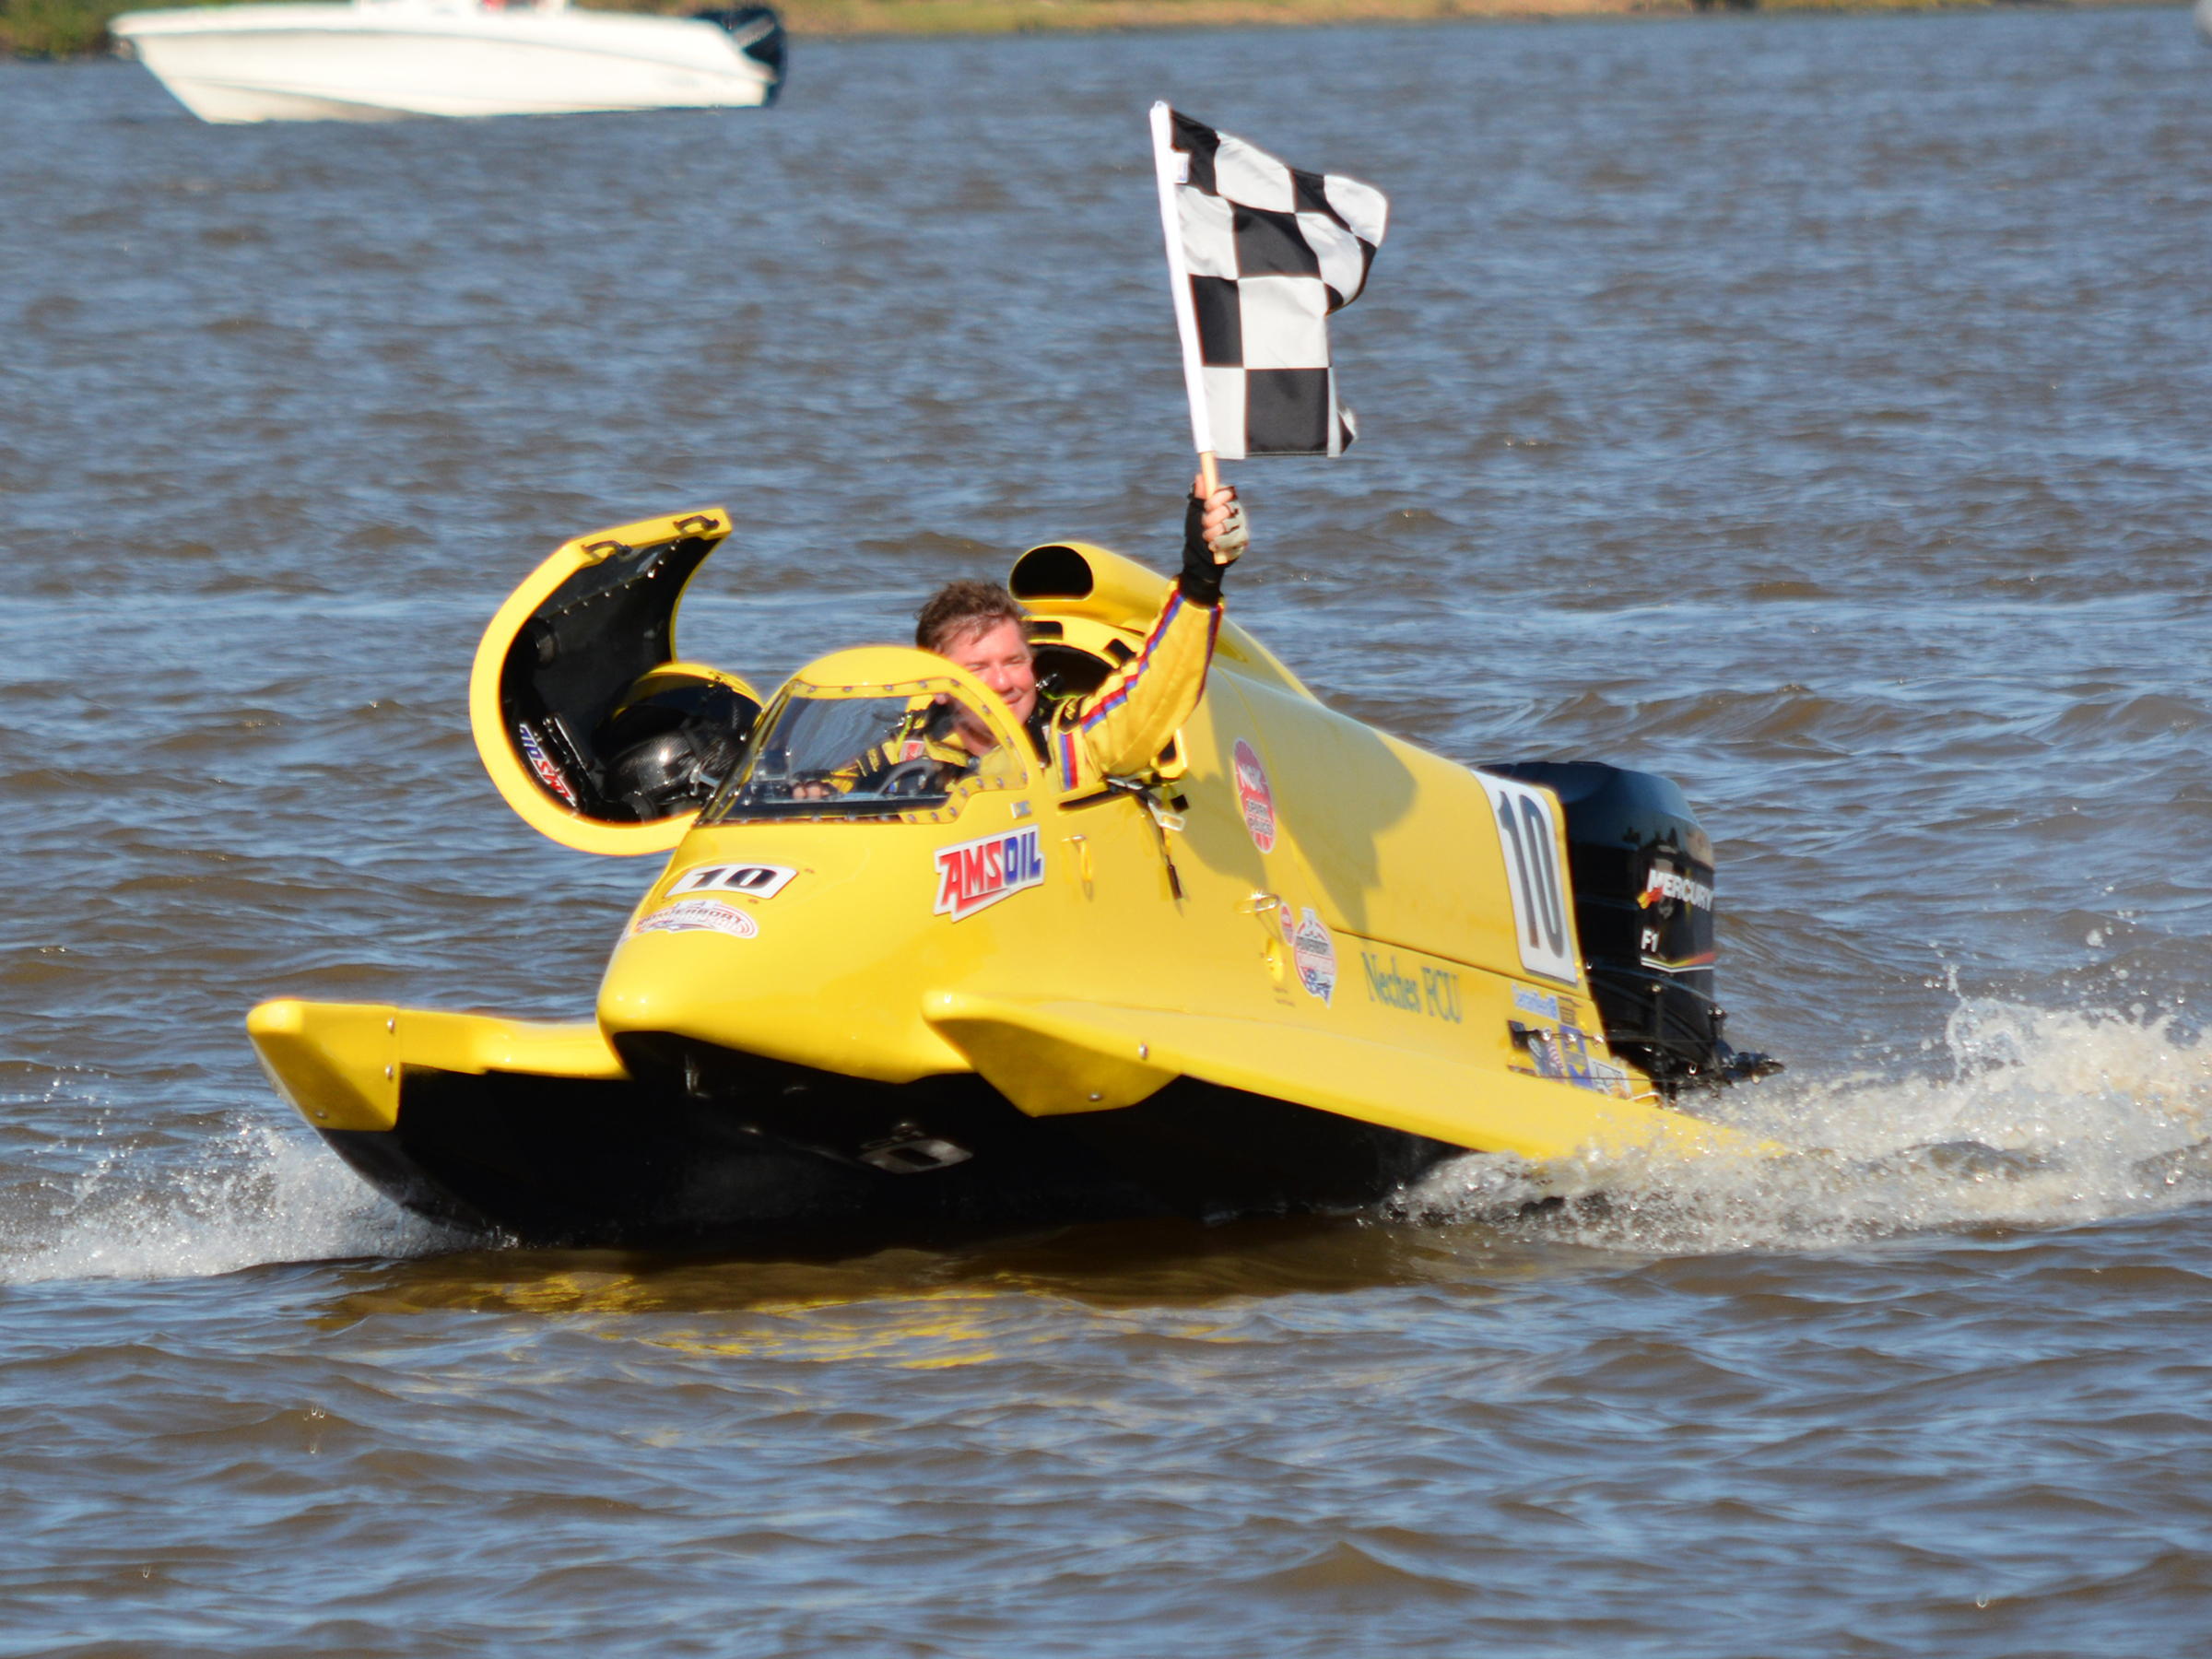 2018 NGK F1 Powerboat Championship 1st Race at the Port